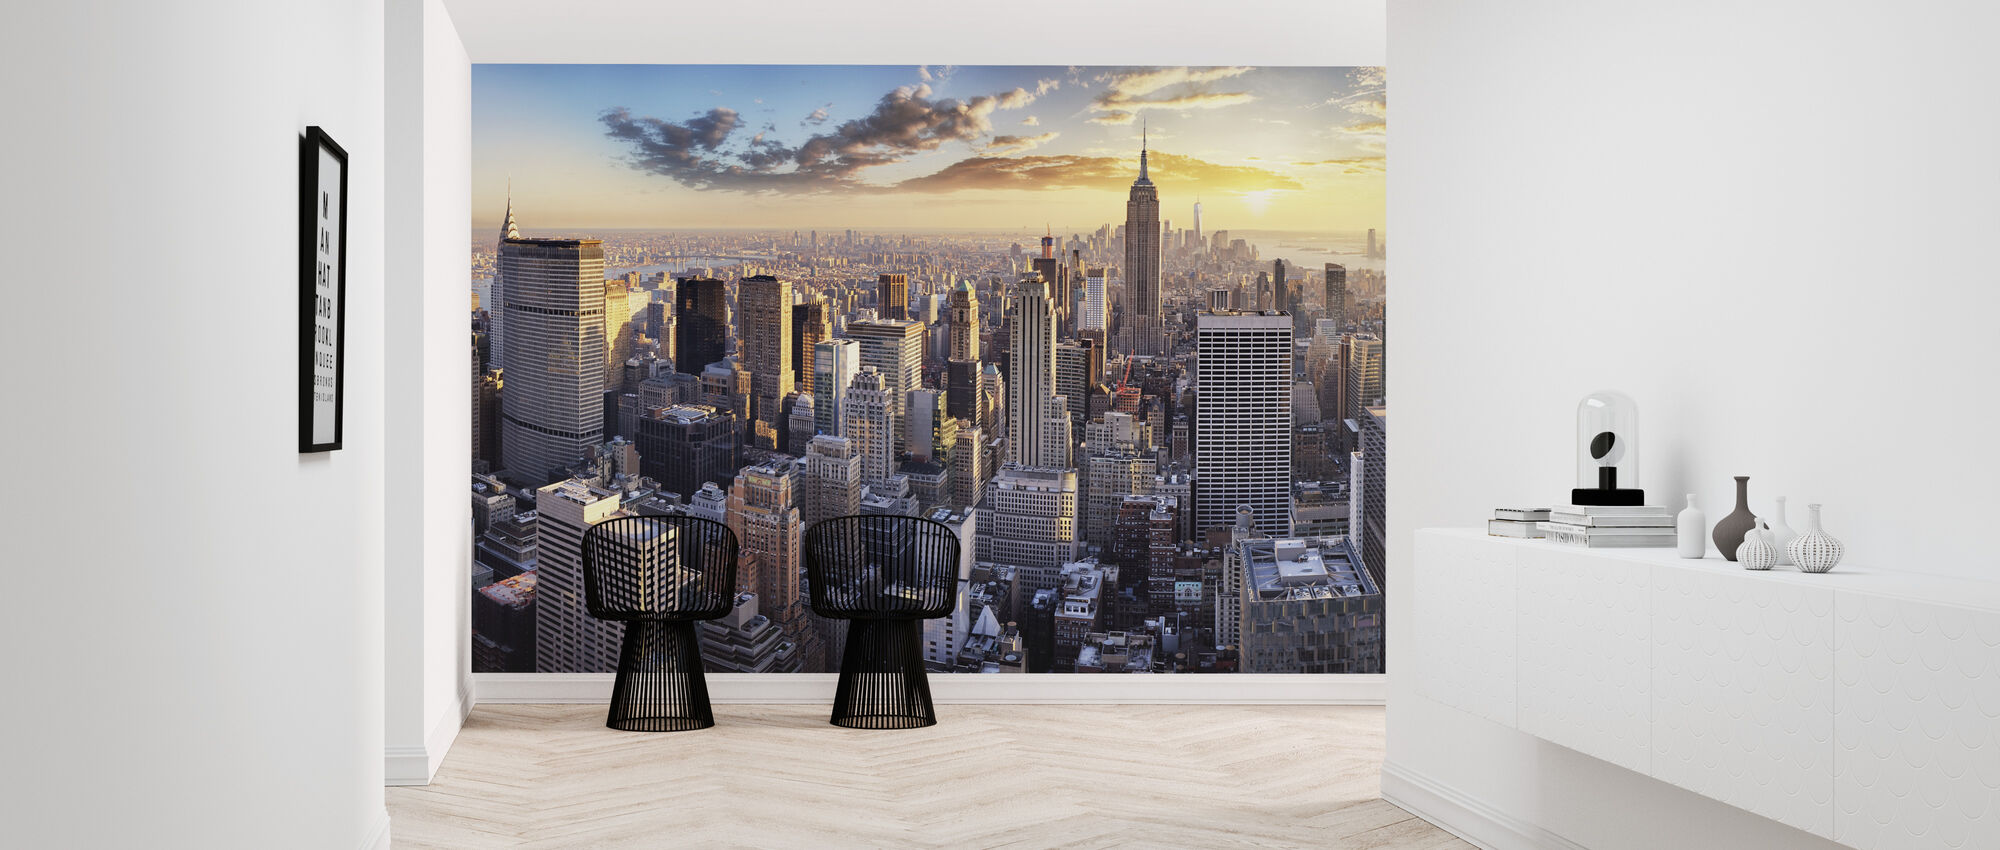 New York Skyline - Wallpaper - Hallway